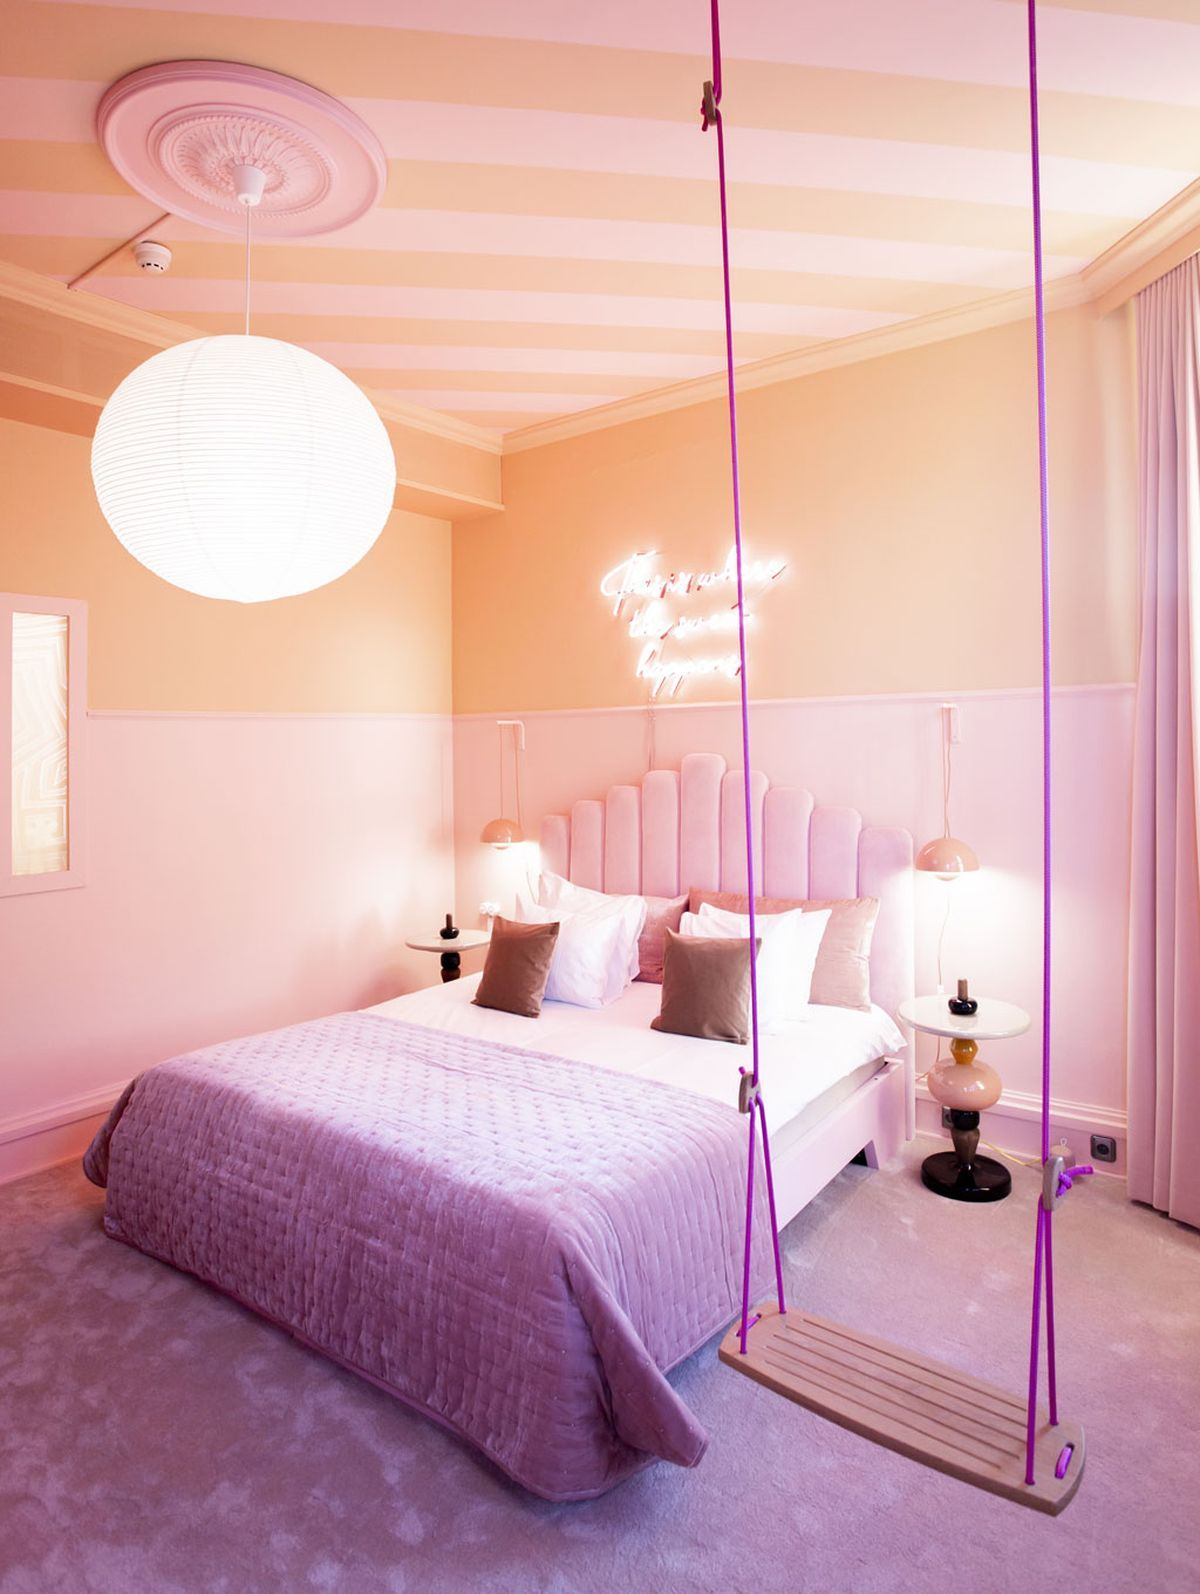 Hotel Room Accessories: The World's First Ice Cream Hotel Room Has Popped Up In